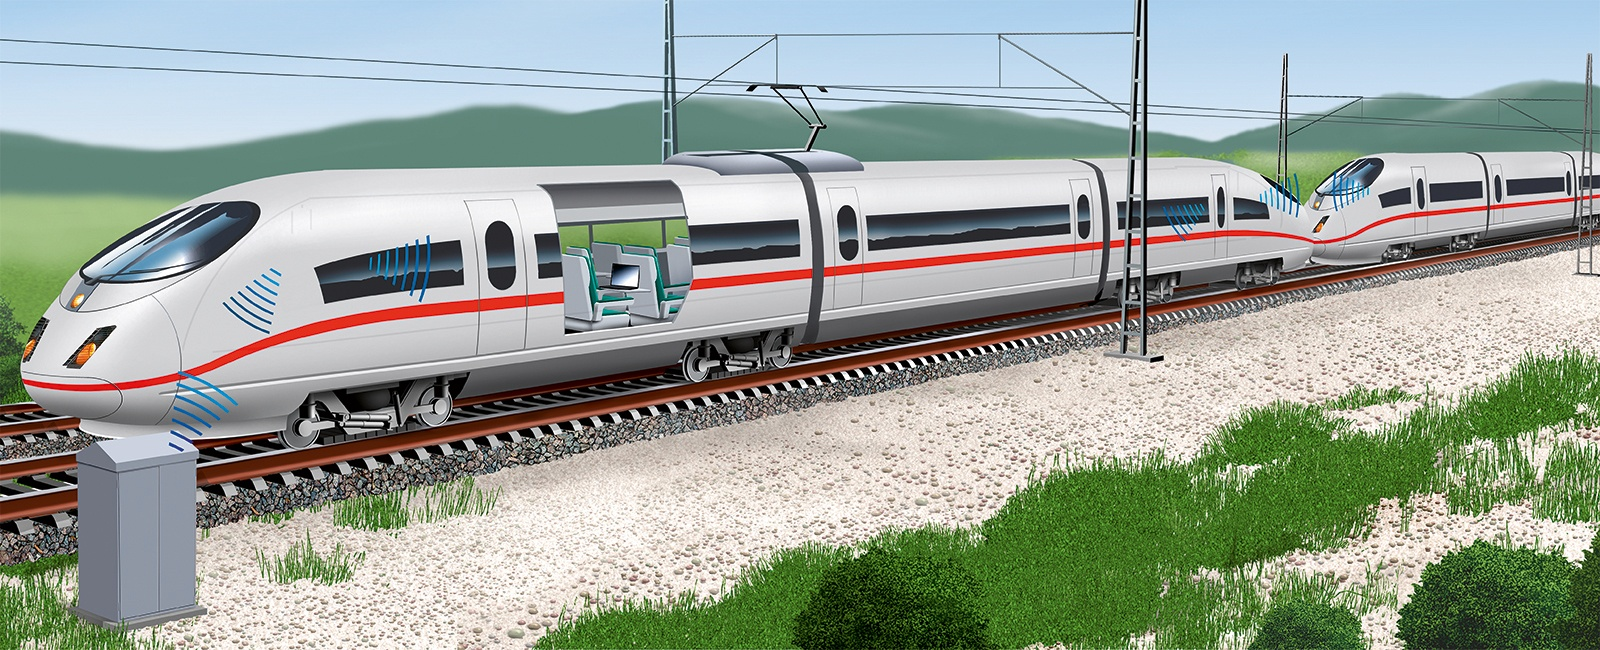 3 benefits time sensitive networking will bring to railway communication